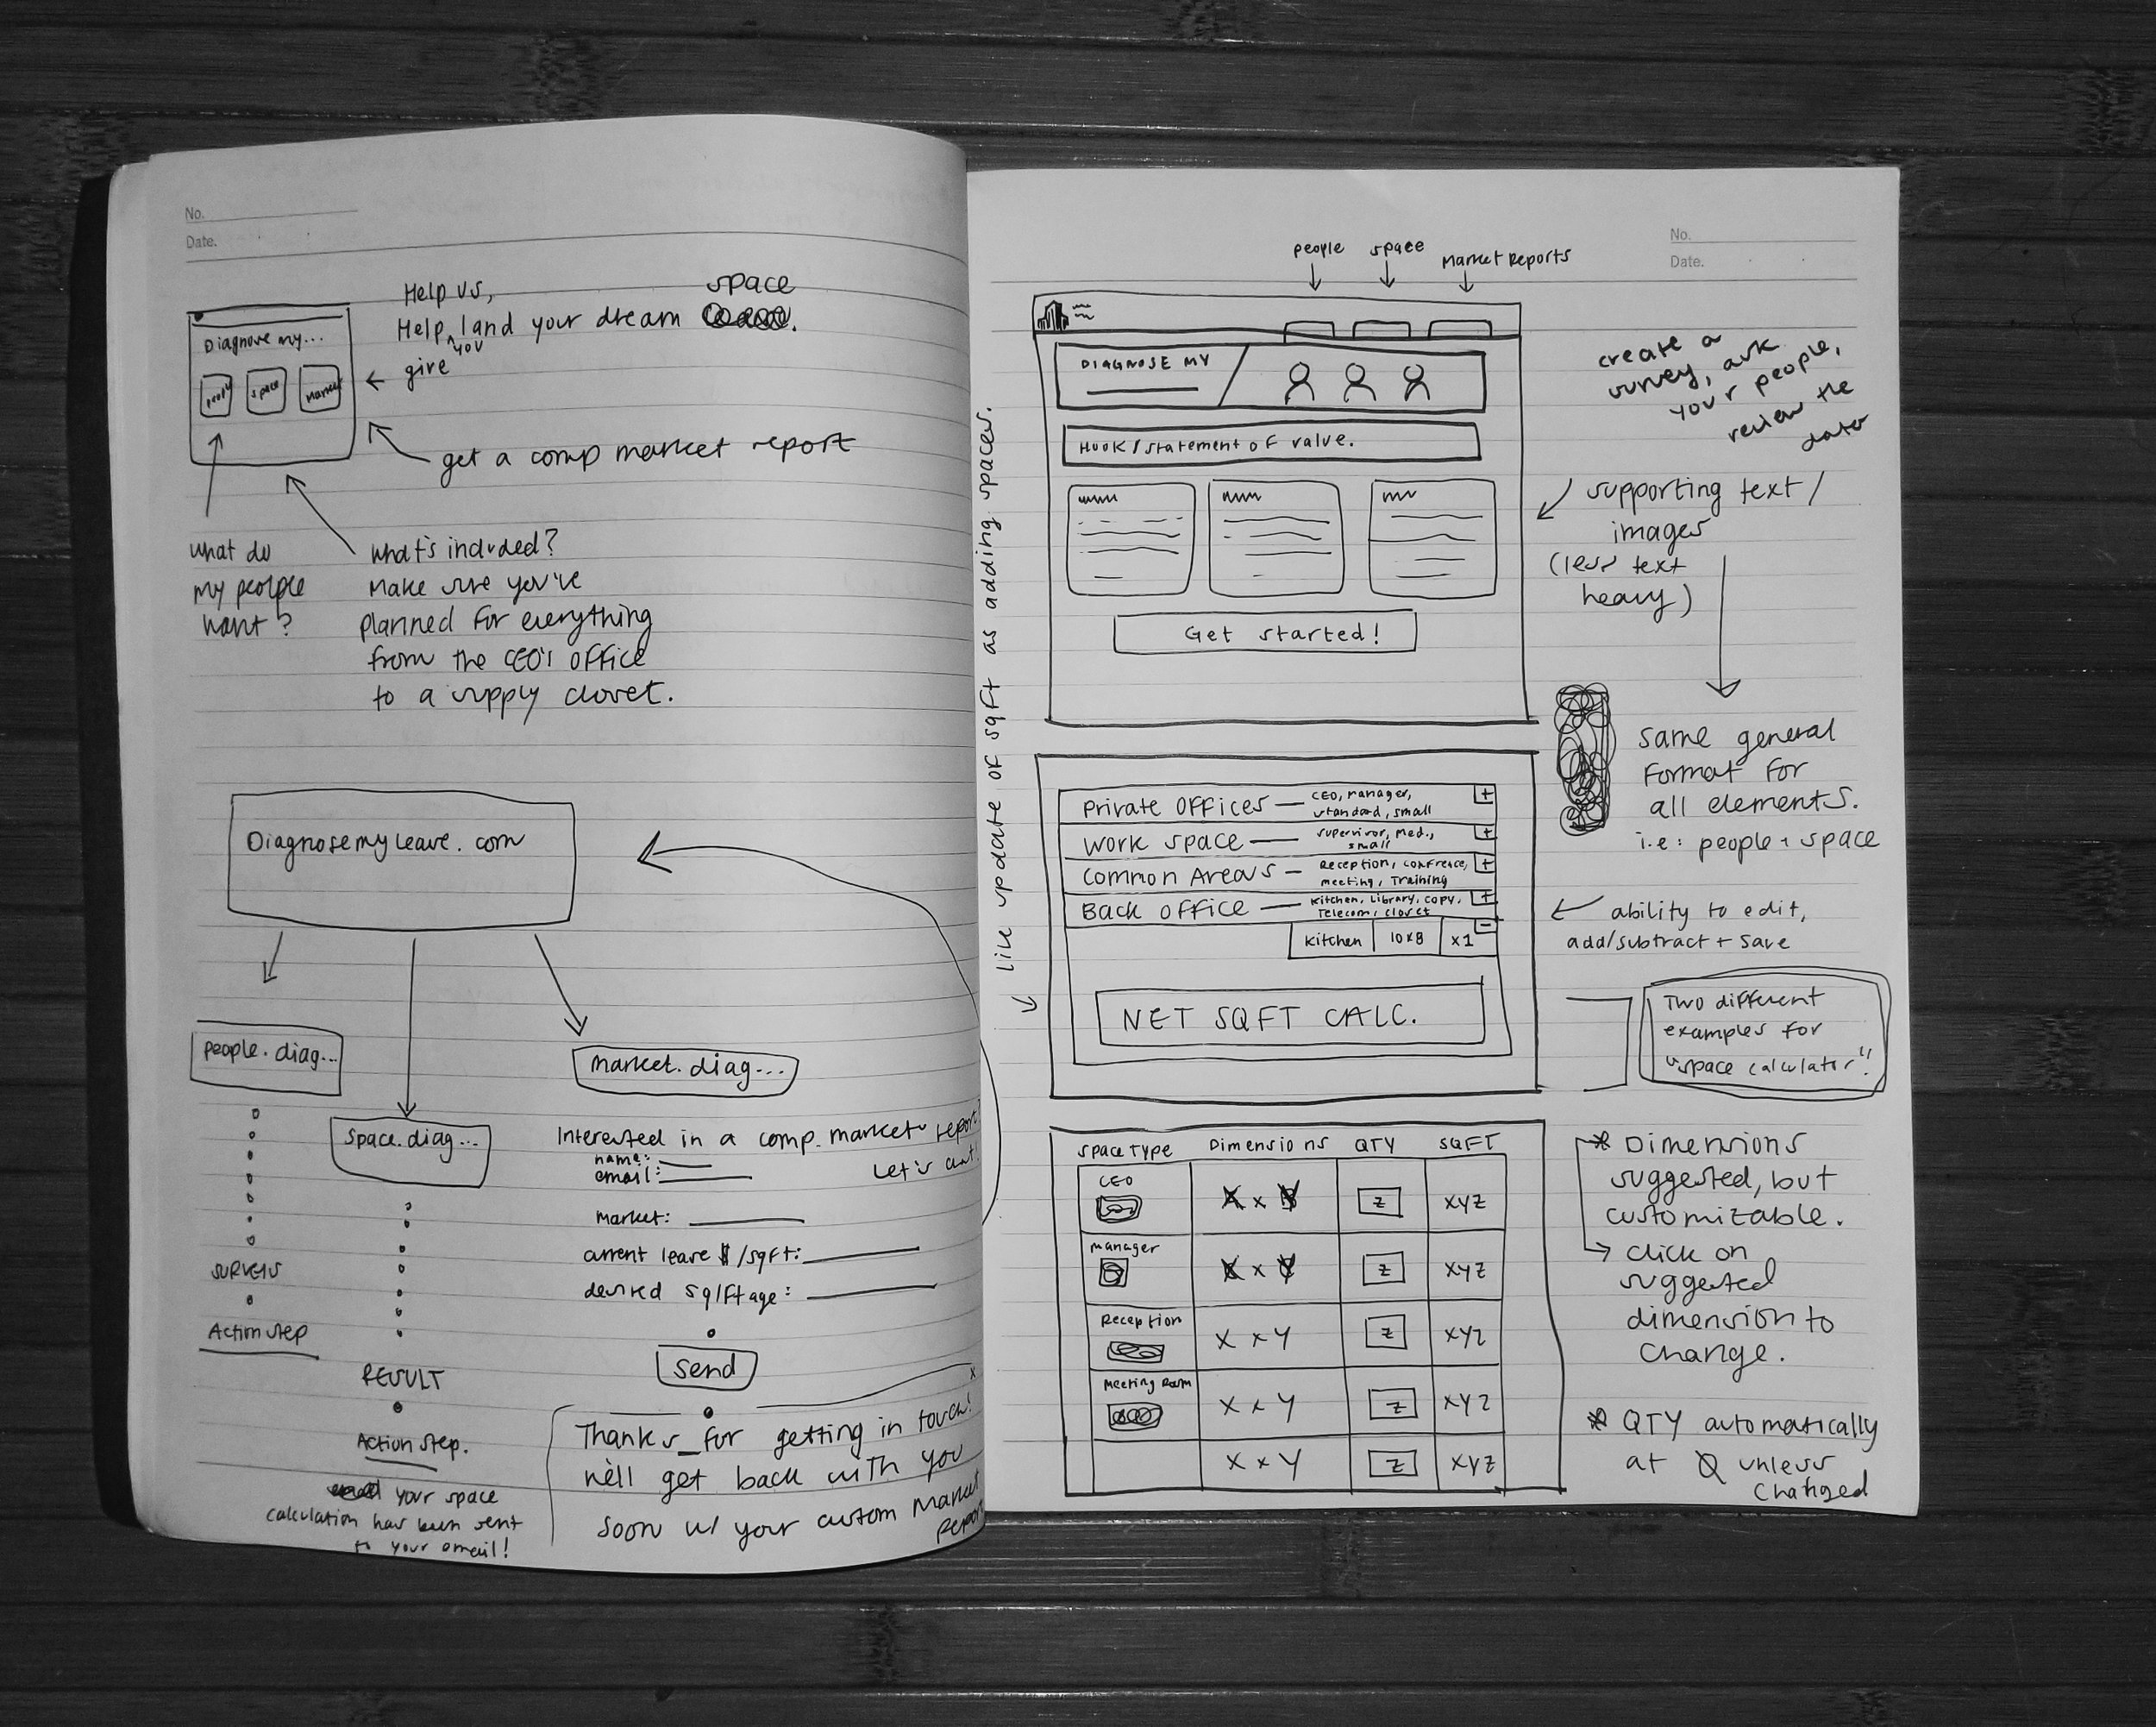 Low-fidelity sketches of the site before digitizing it in Sketch.